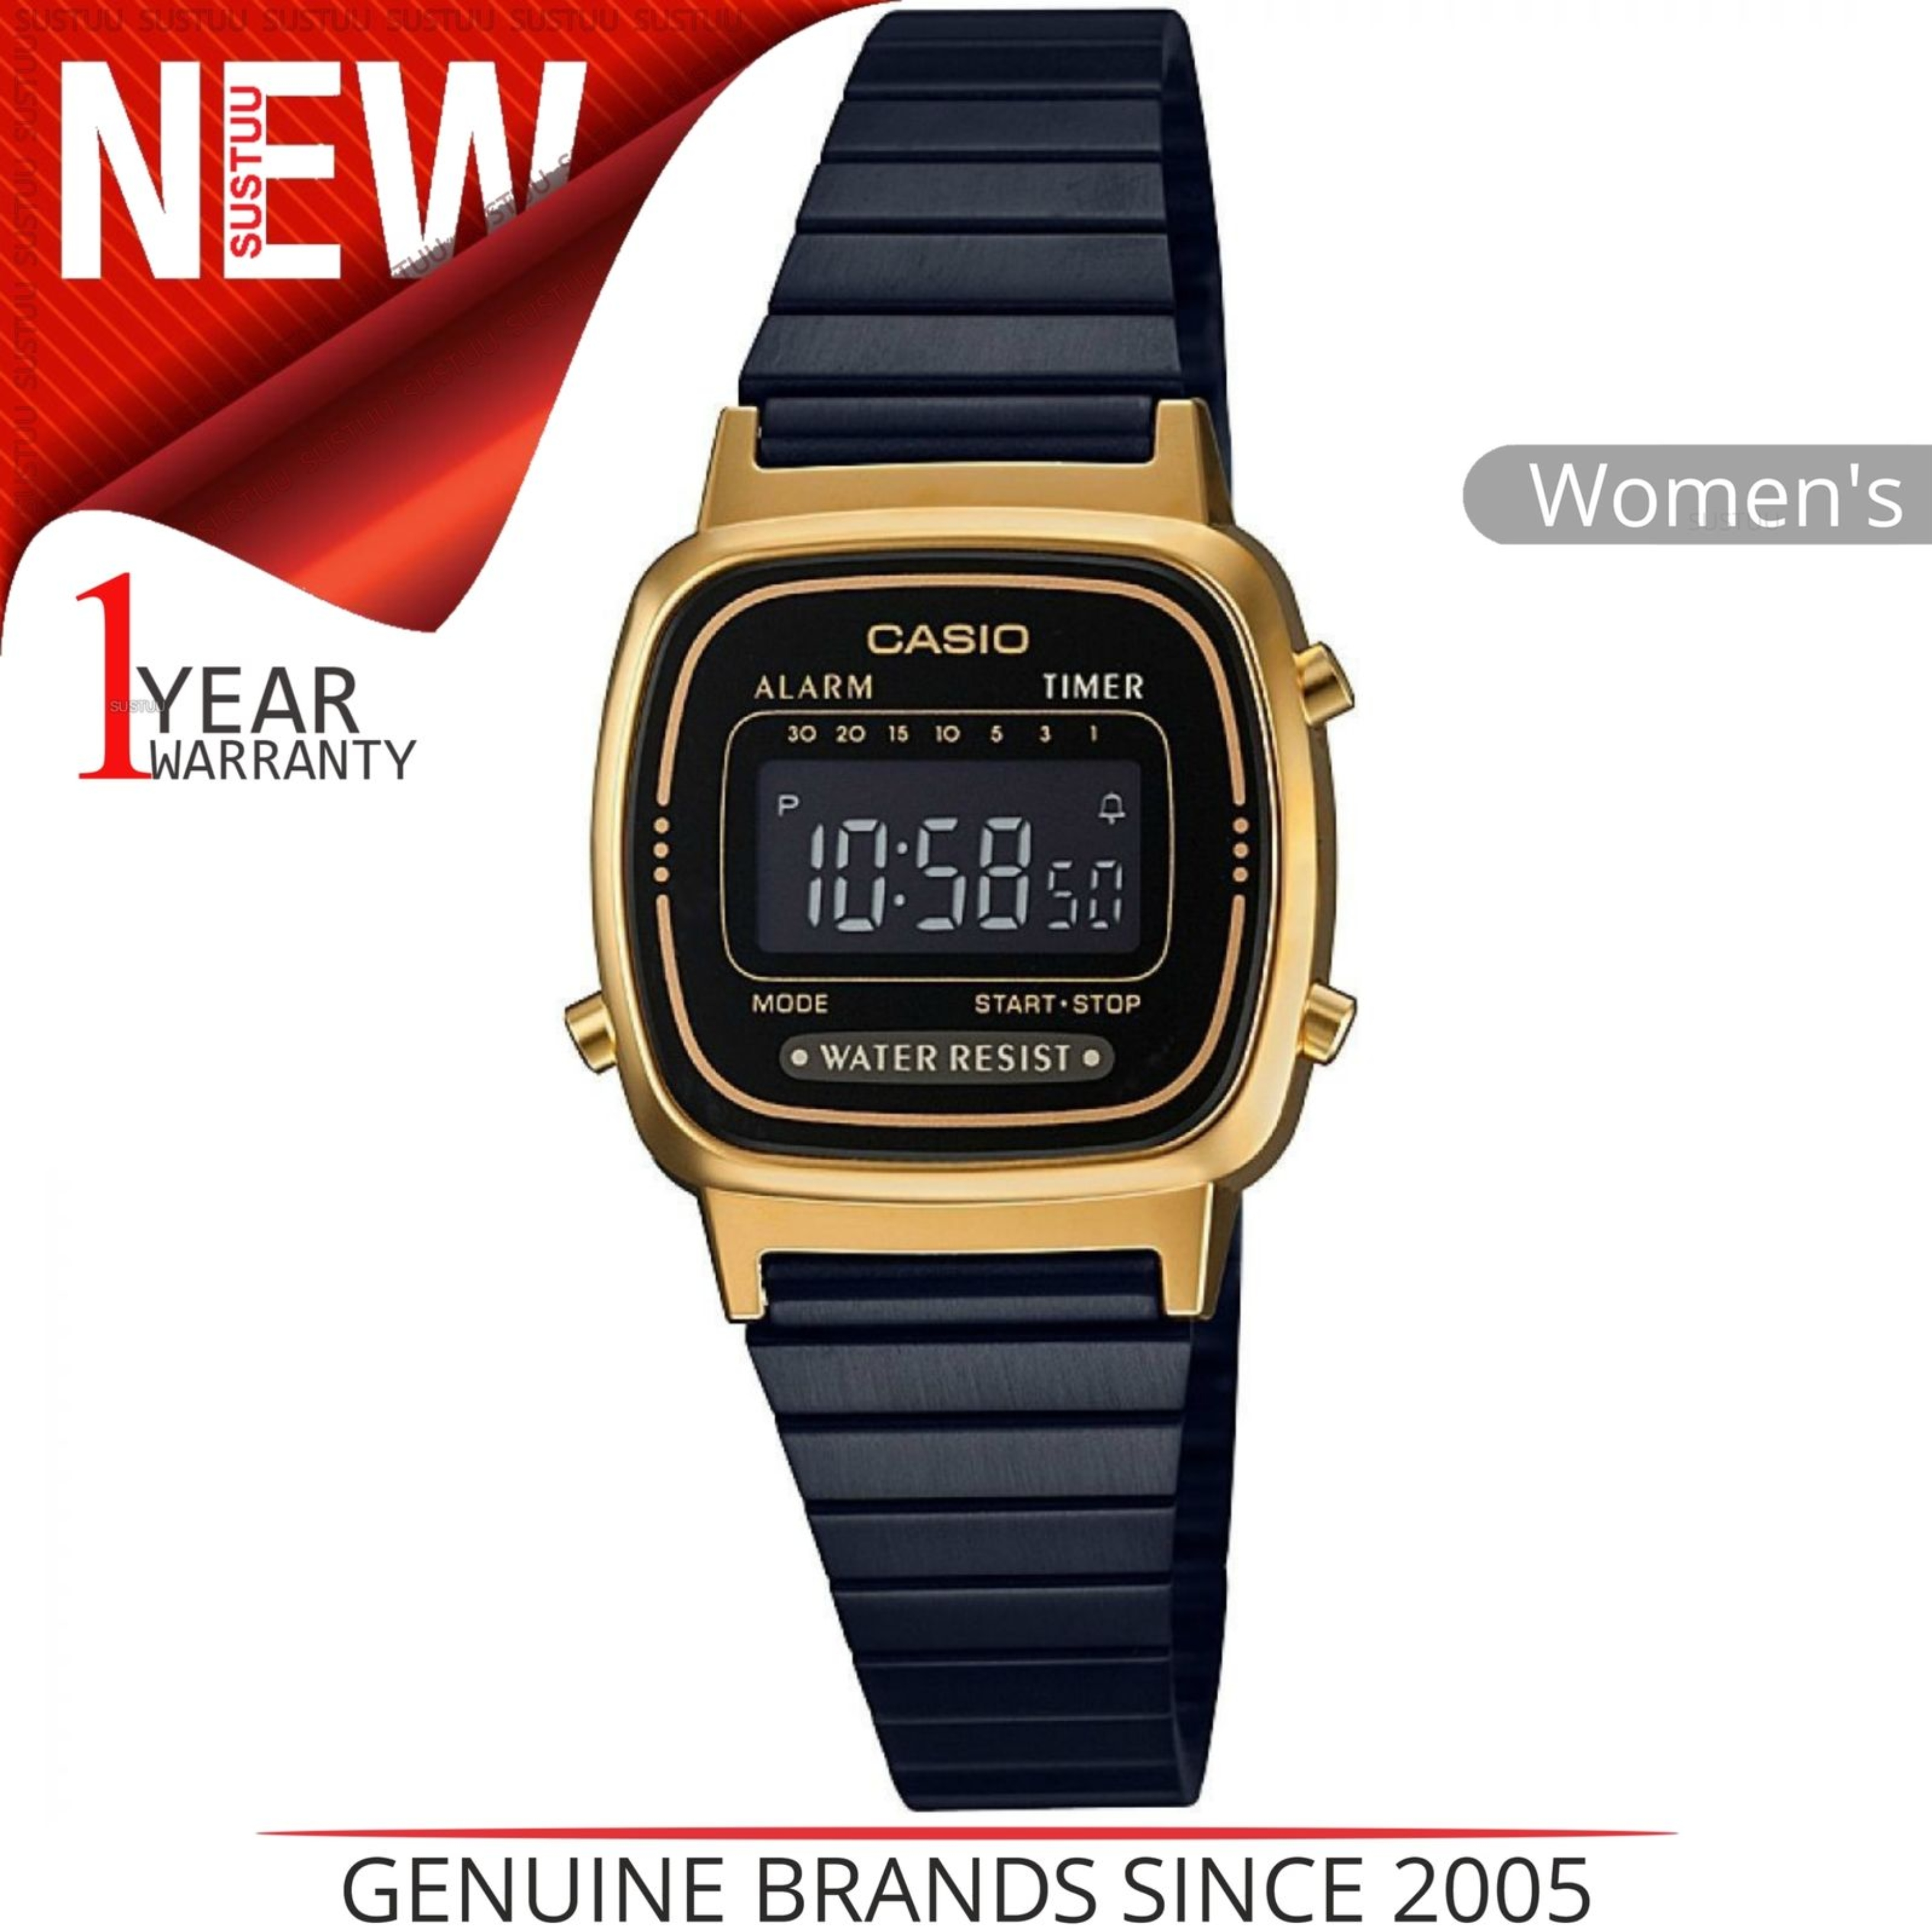 Casio Ladies' Digital Watch?Gold Plated Retro Shape-Black Dial?LA670WEGB-1BEF